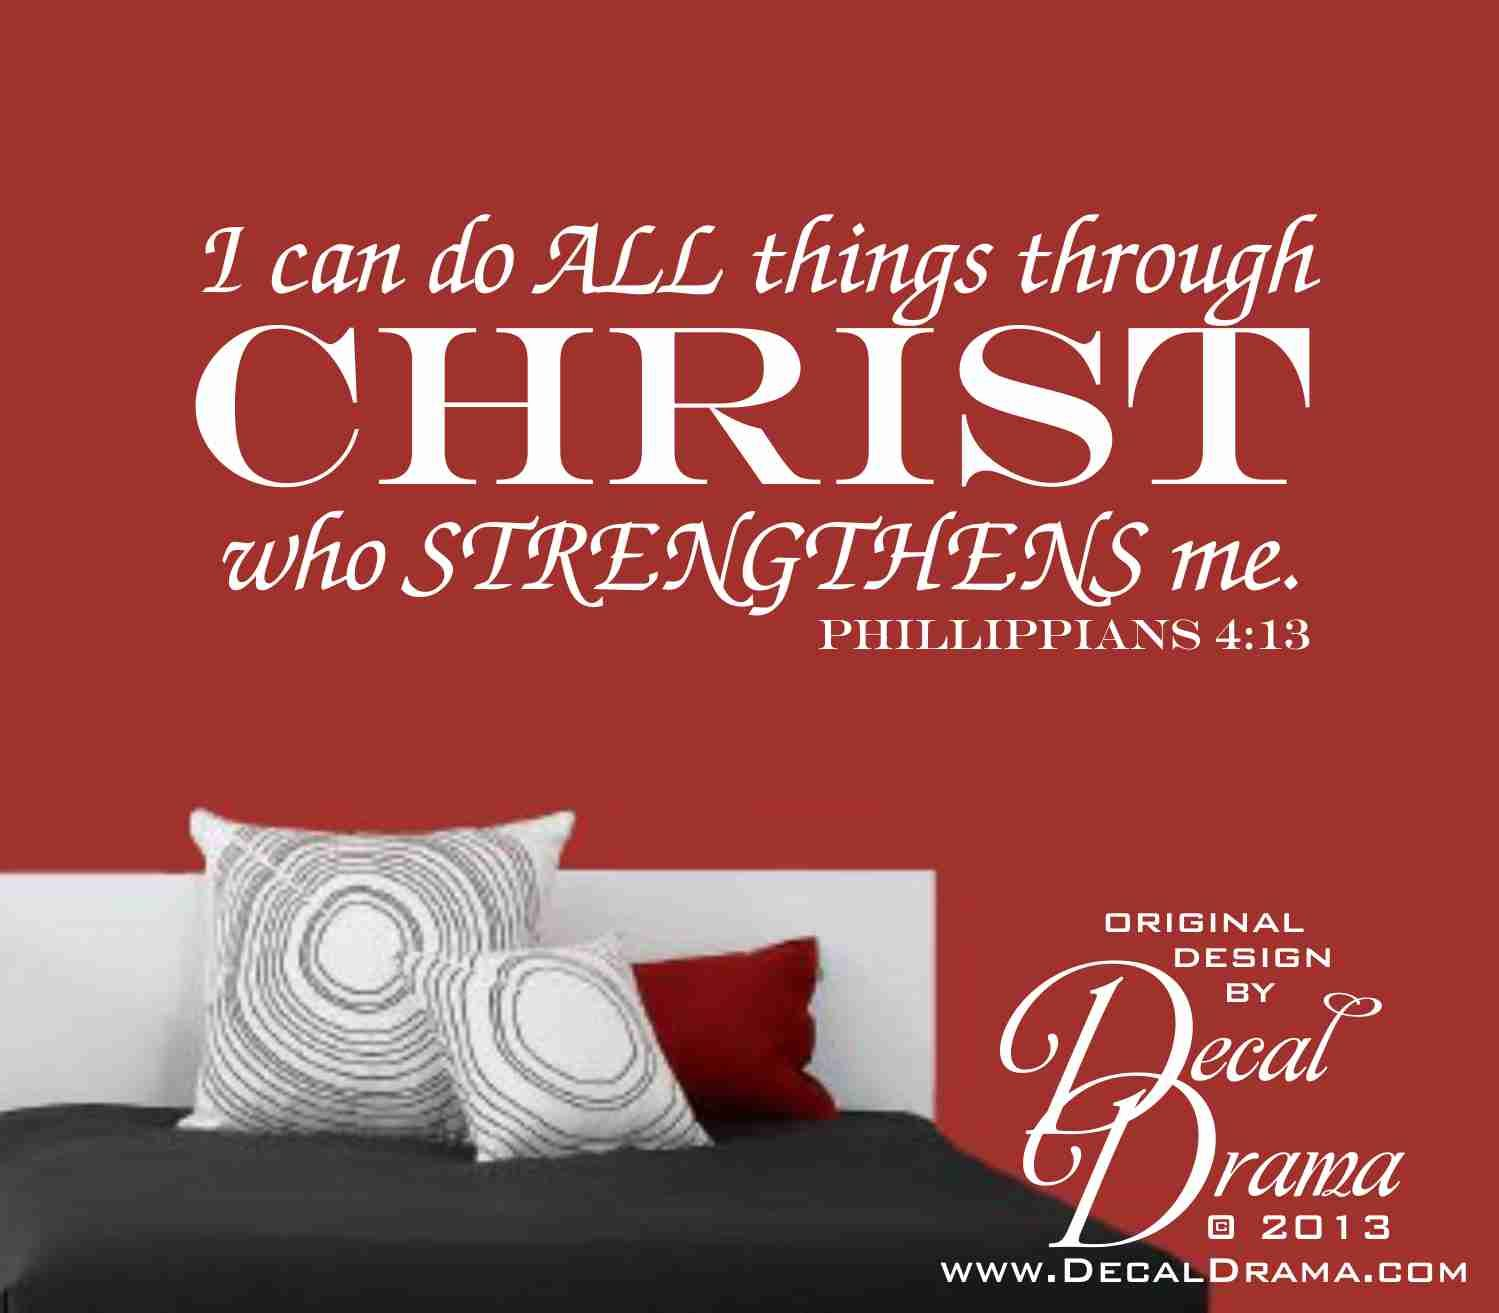 I can do all things through christ who strengthens me scripture i can do all things through christ who strengthens me phillippians bible scripture quote vinyl wall decal sold by decal drama amipublicfo Images